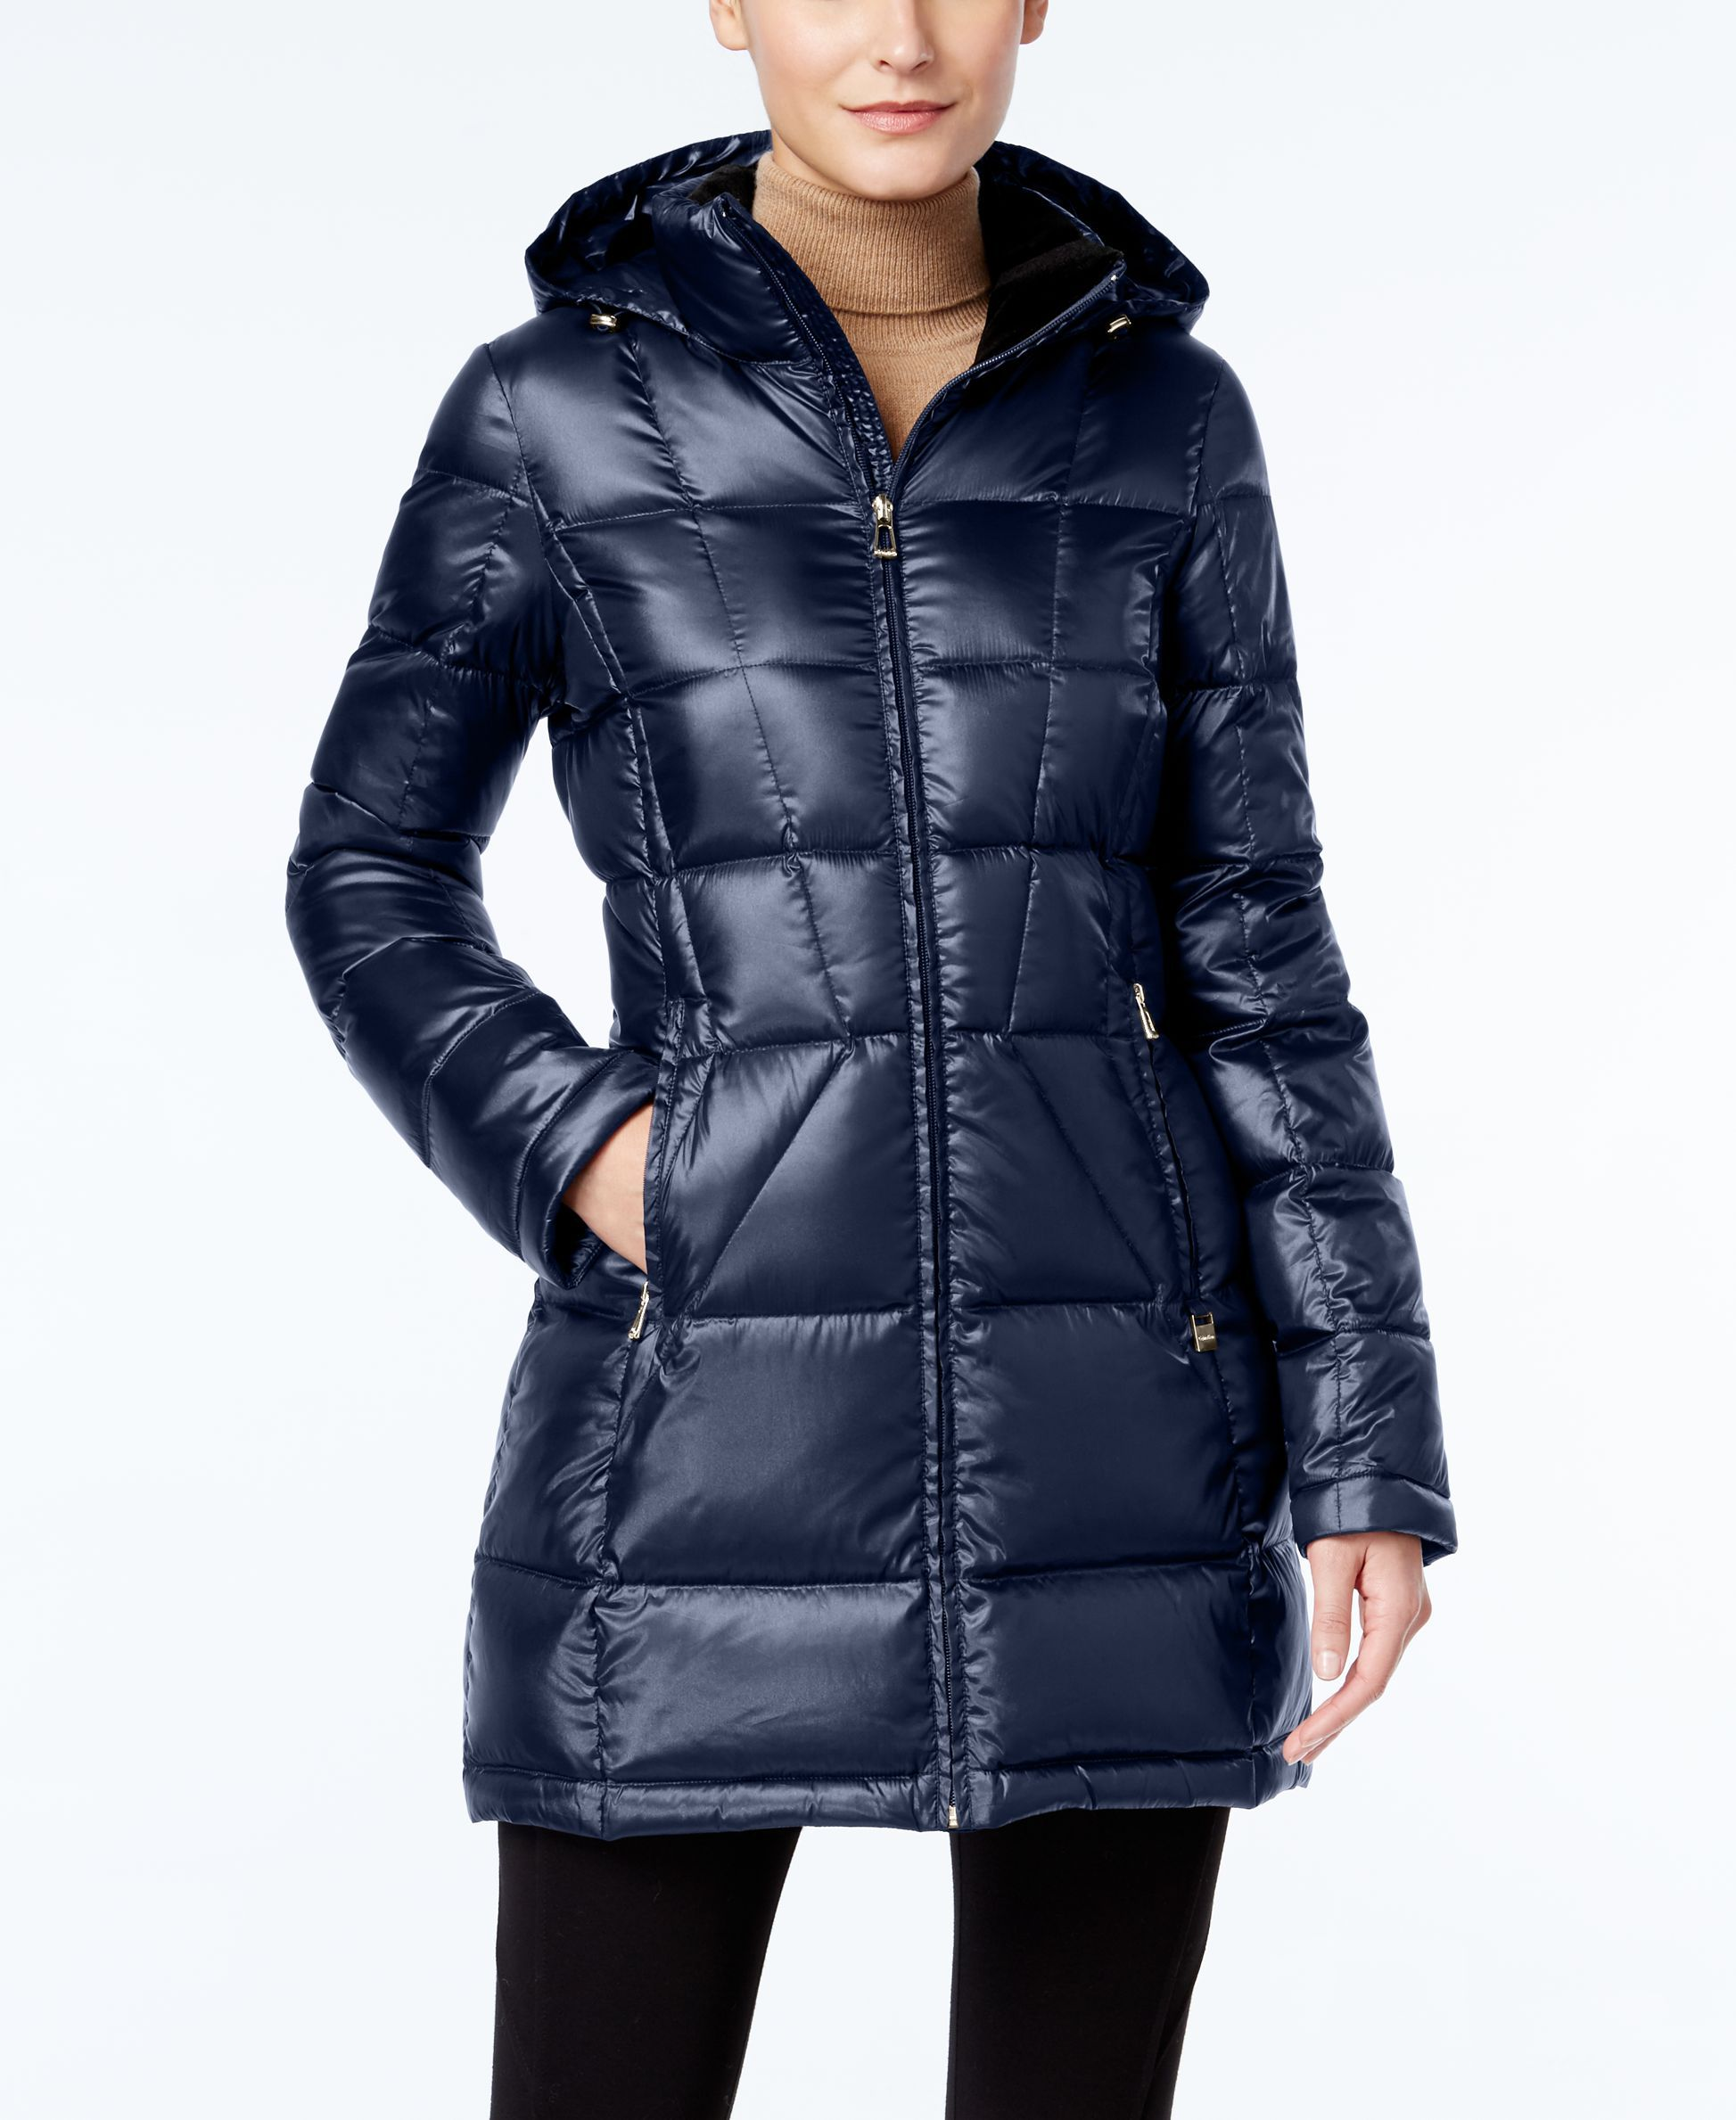 d308c27be Calvin Klein Hooded Packable Down Puffer Coat   jackets   Down ...